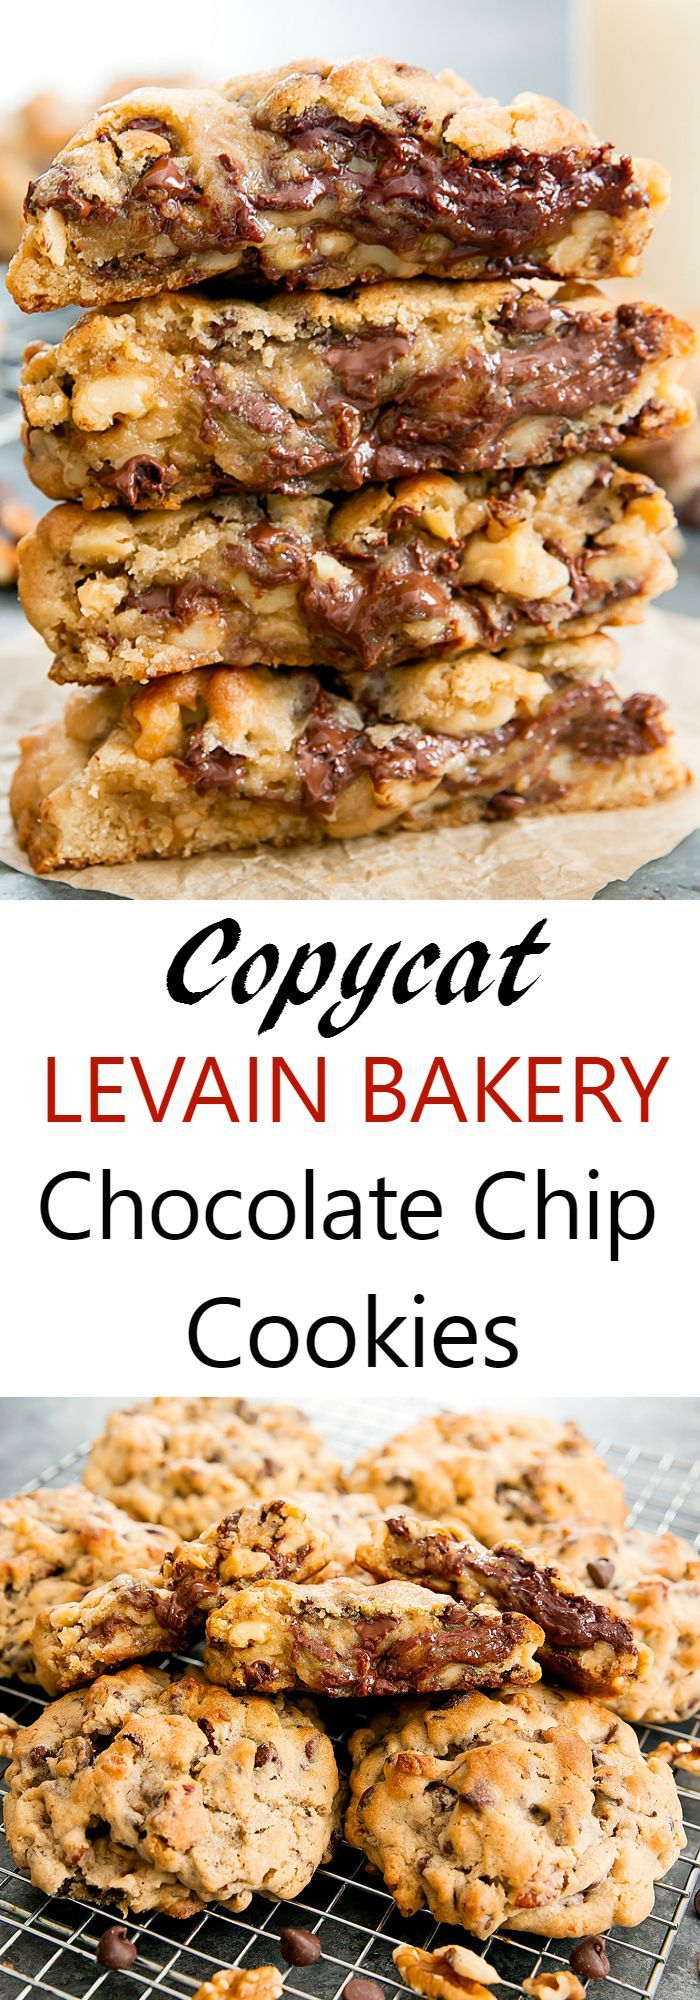 Levain Bakery Chocolate Chip Walnut Cookies. A copycat recipe you can make at home that tastes like the famous ones from NYC!